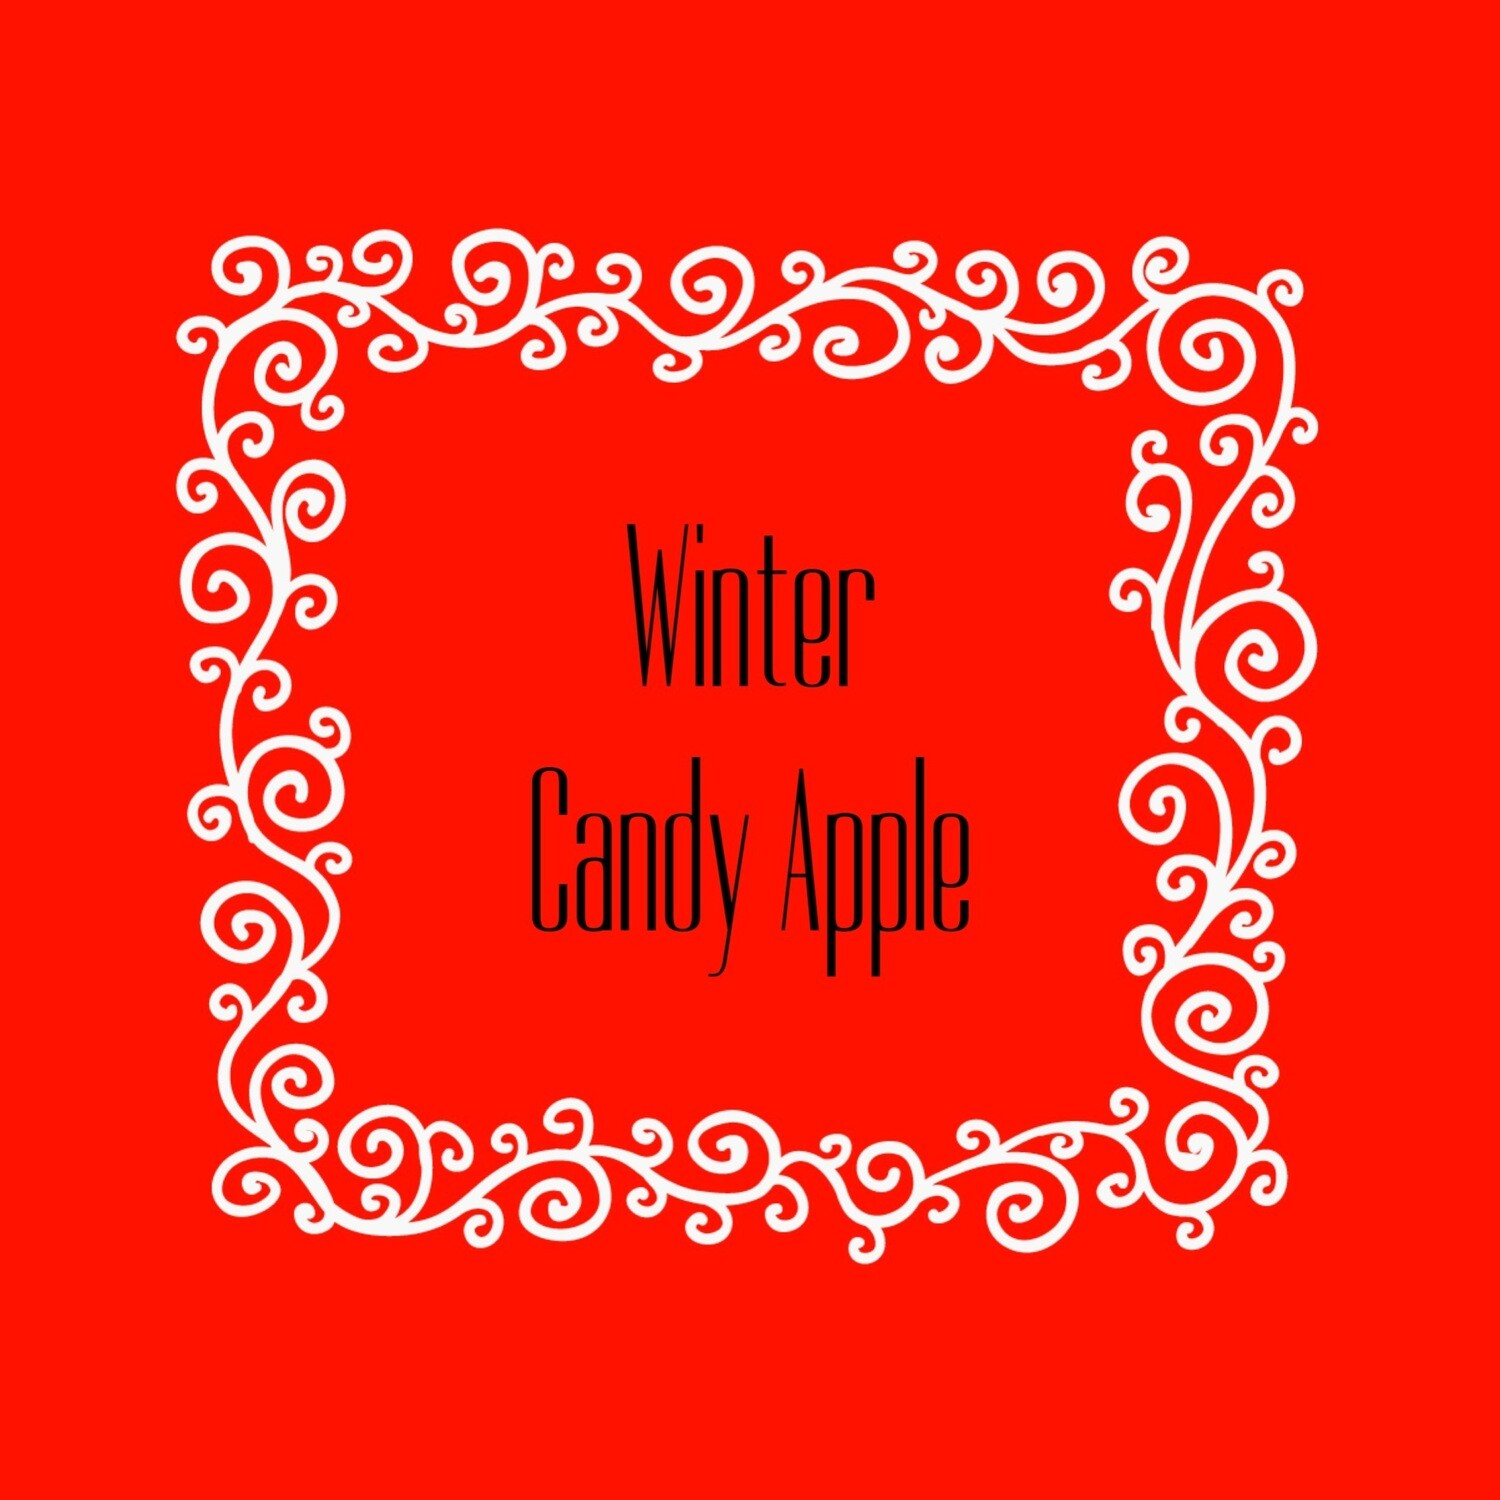 WINTER CANDY APPLE FRAGRANCE OIL